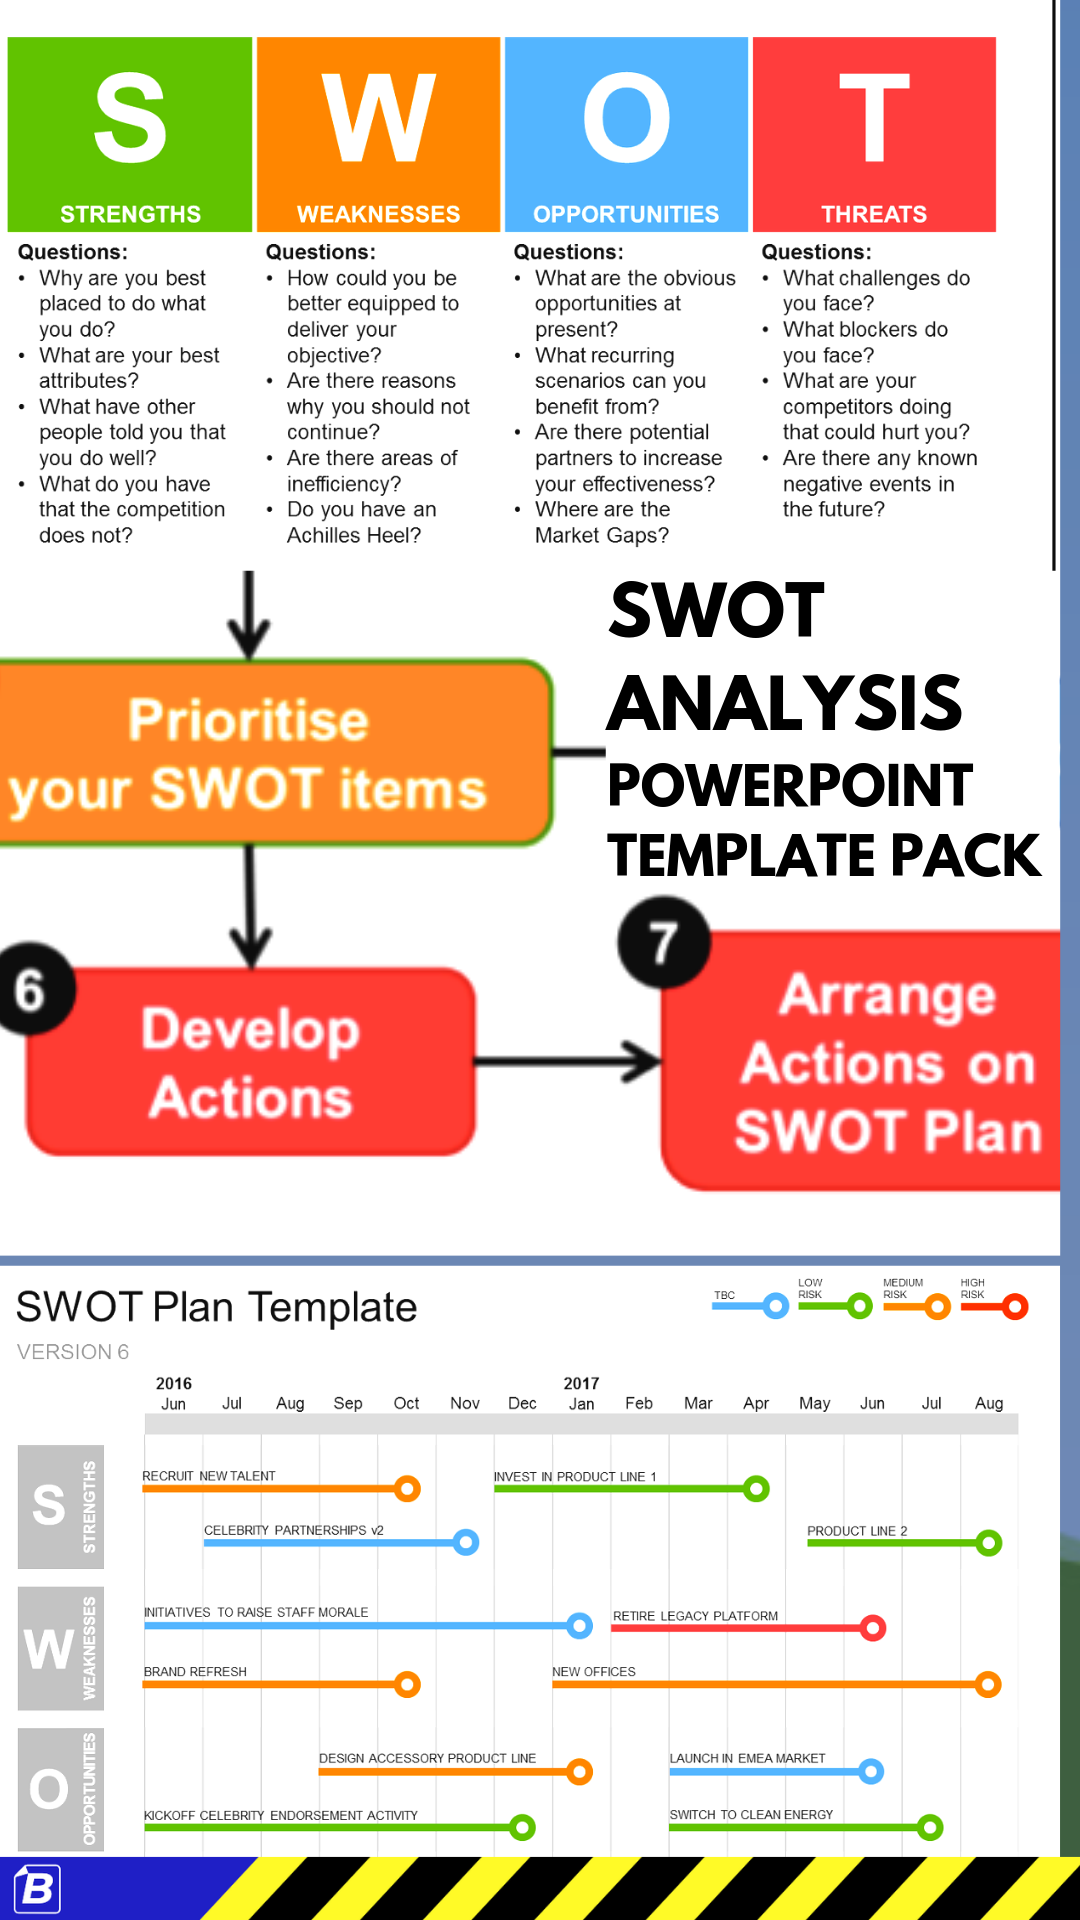 SWOT Analysis Templates Swot analysis template, Swot